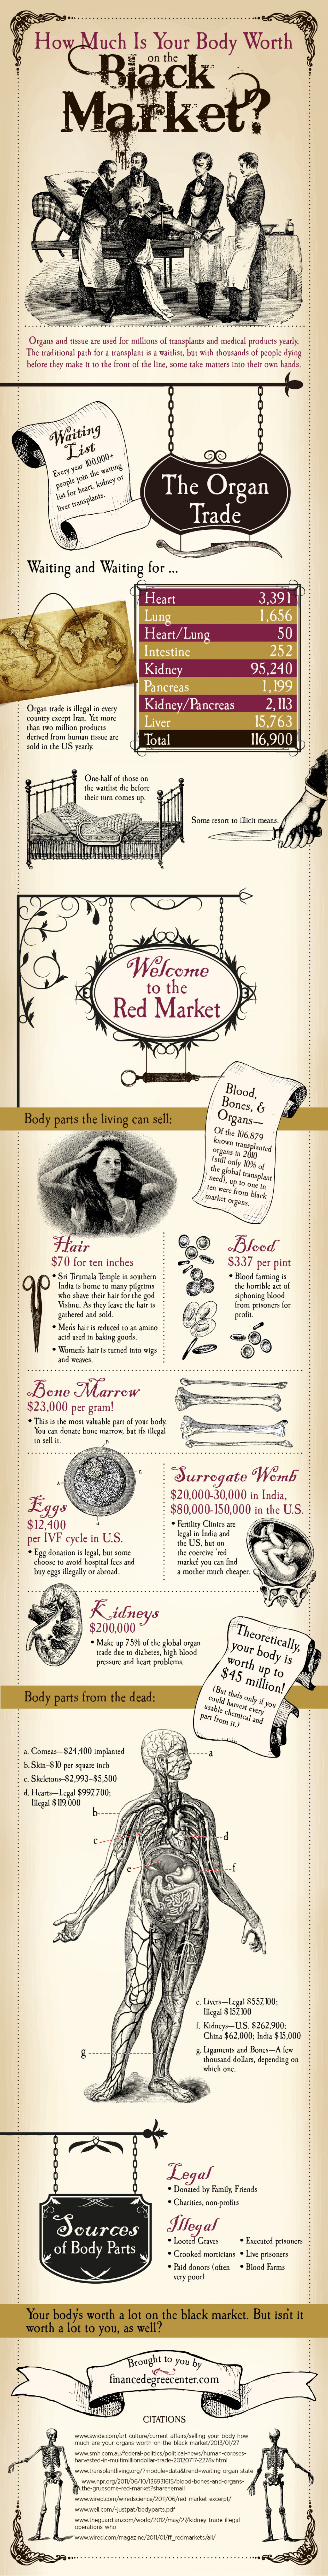 How Much is Your Body Worth on the Black Market? Infographic